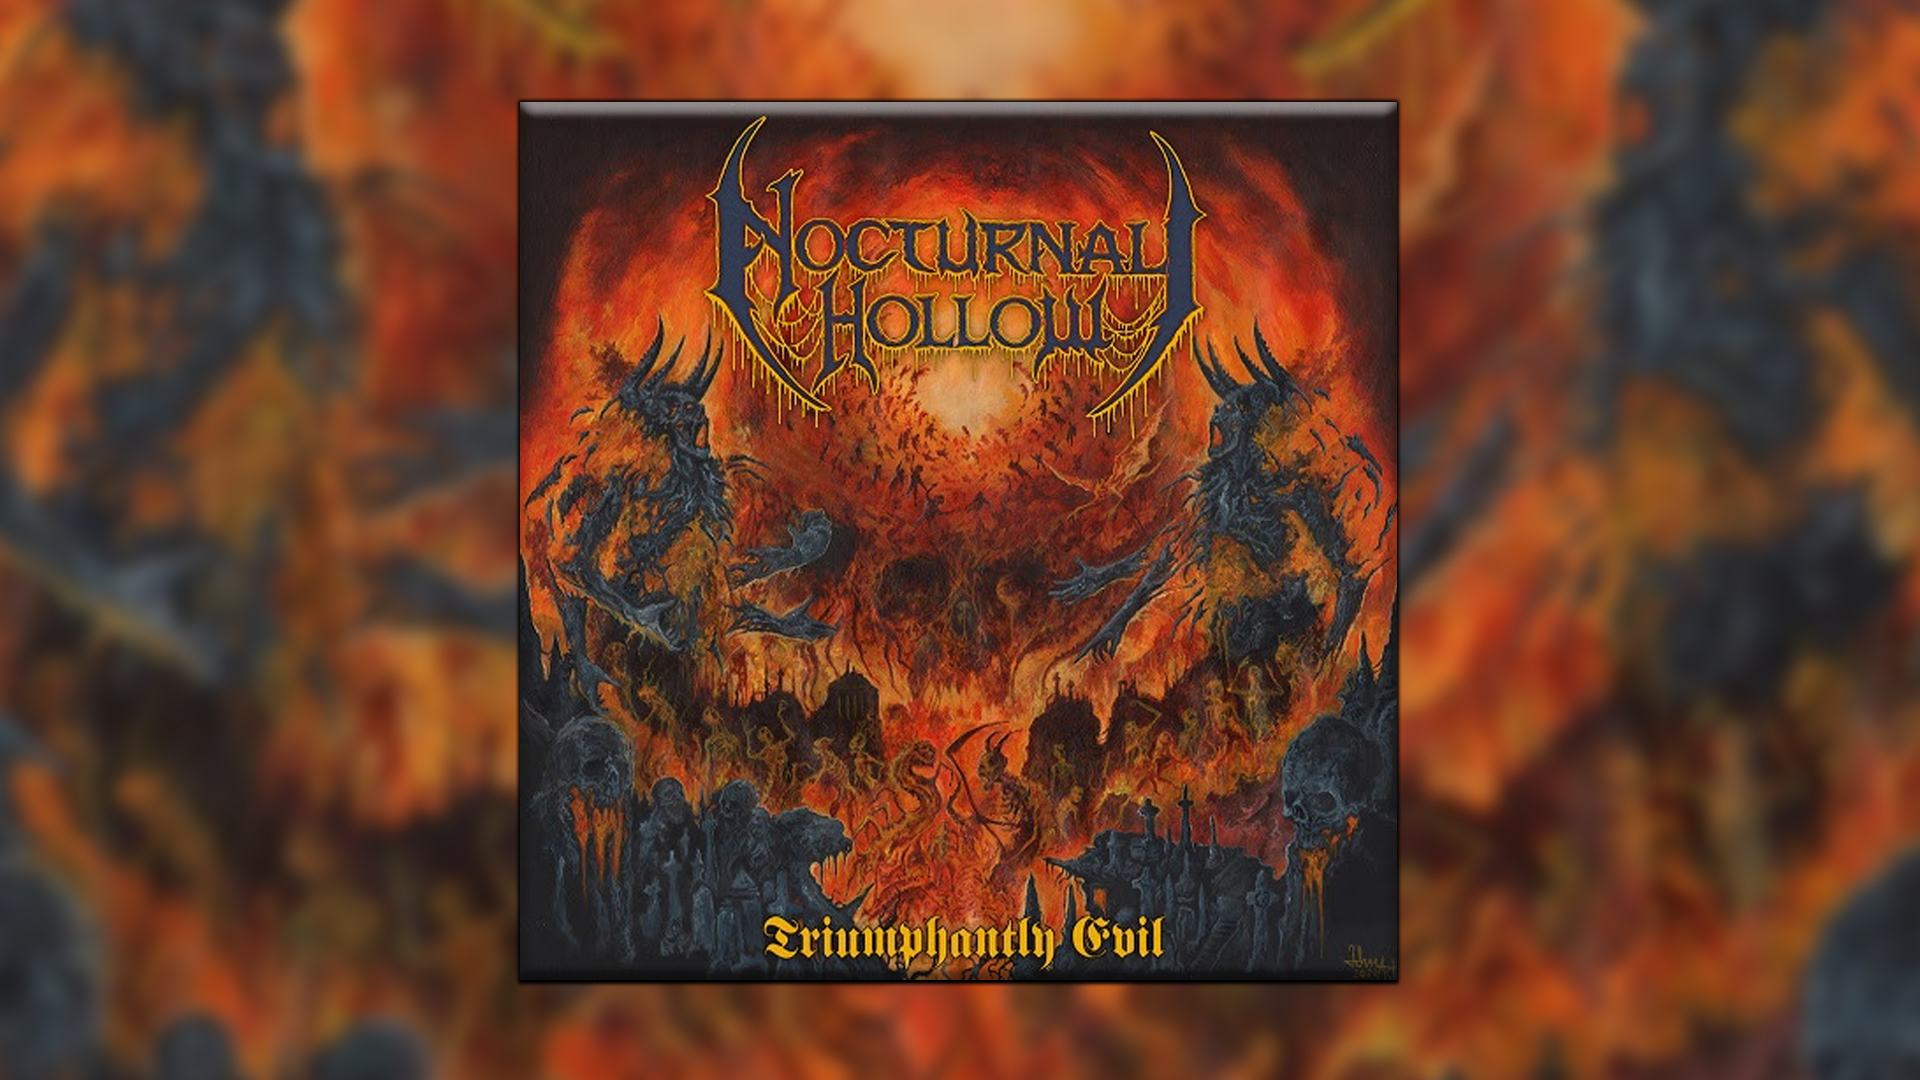 Reseña Nocturnal Hollow Triumphantly Evil